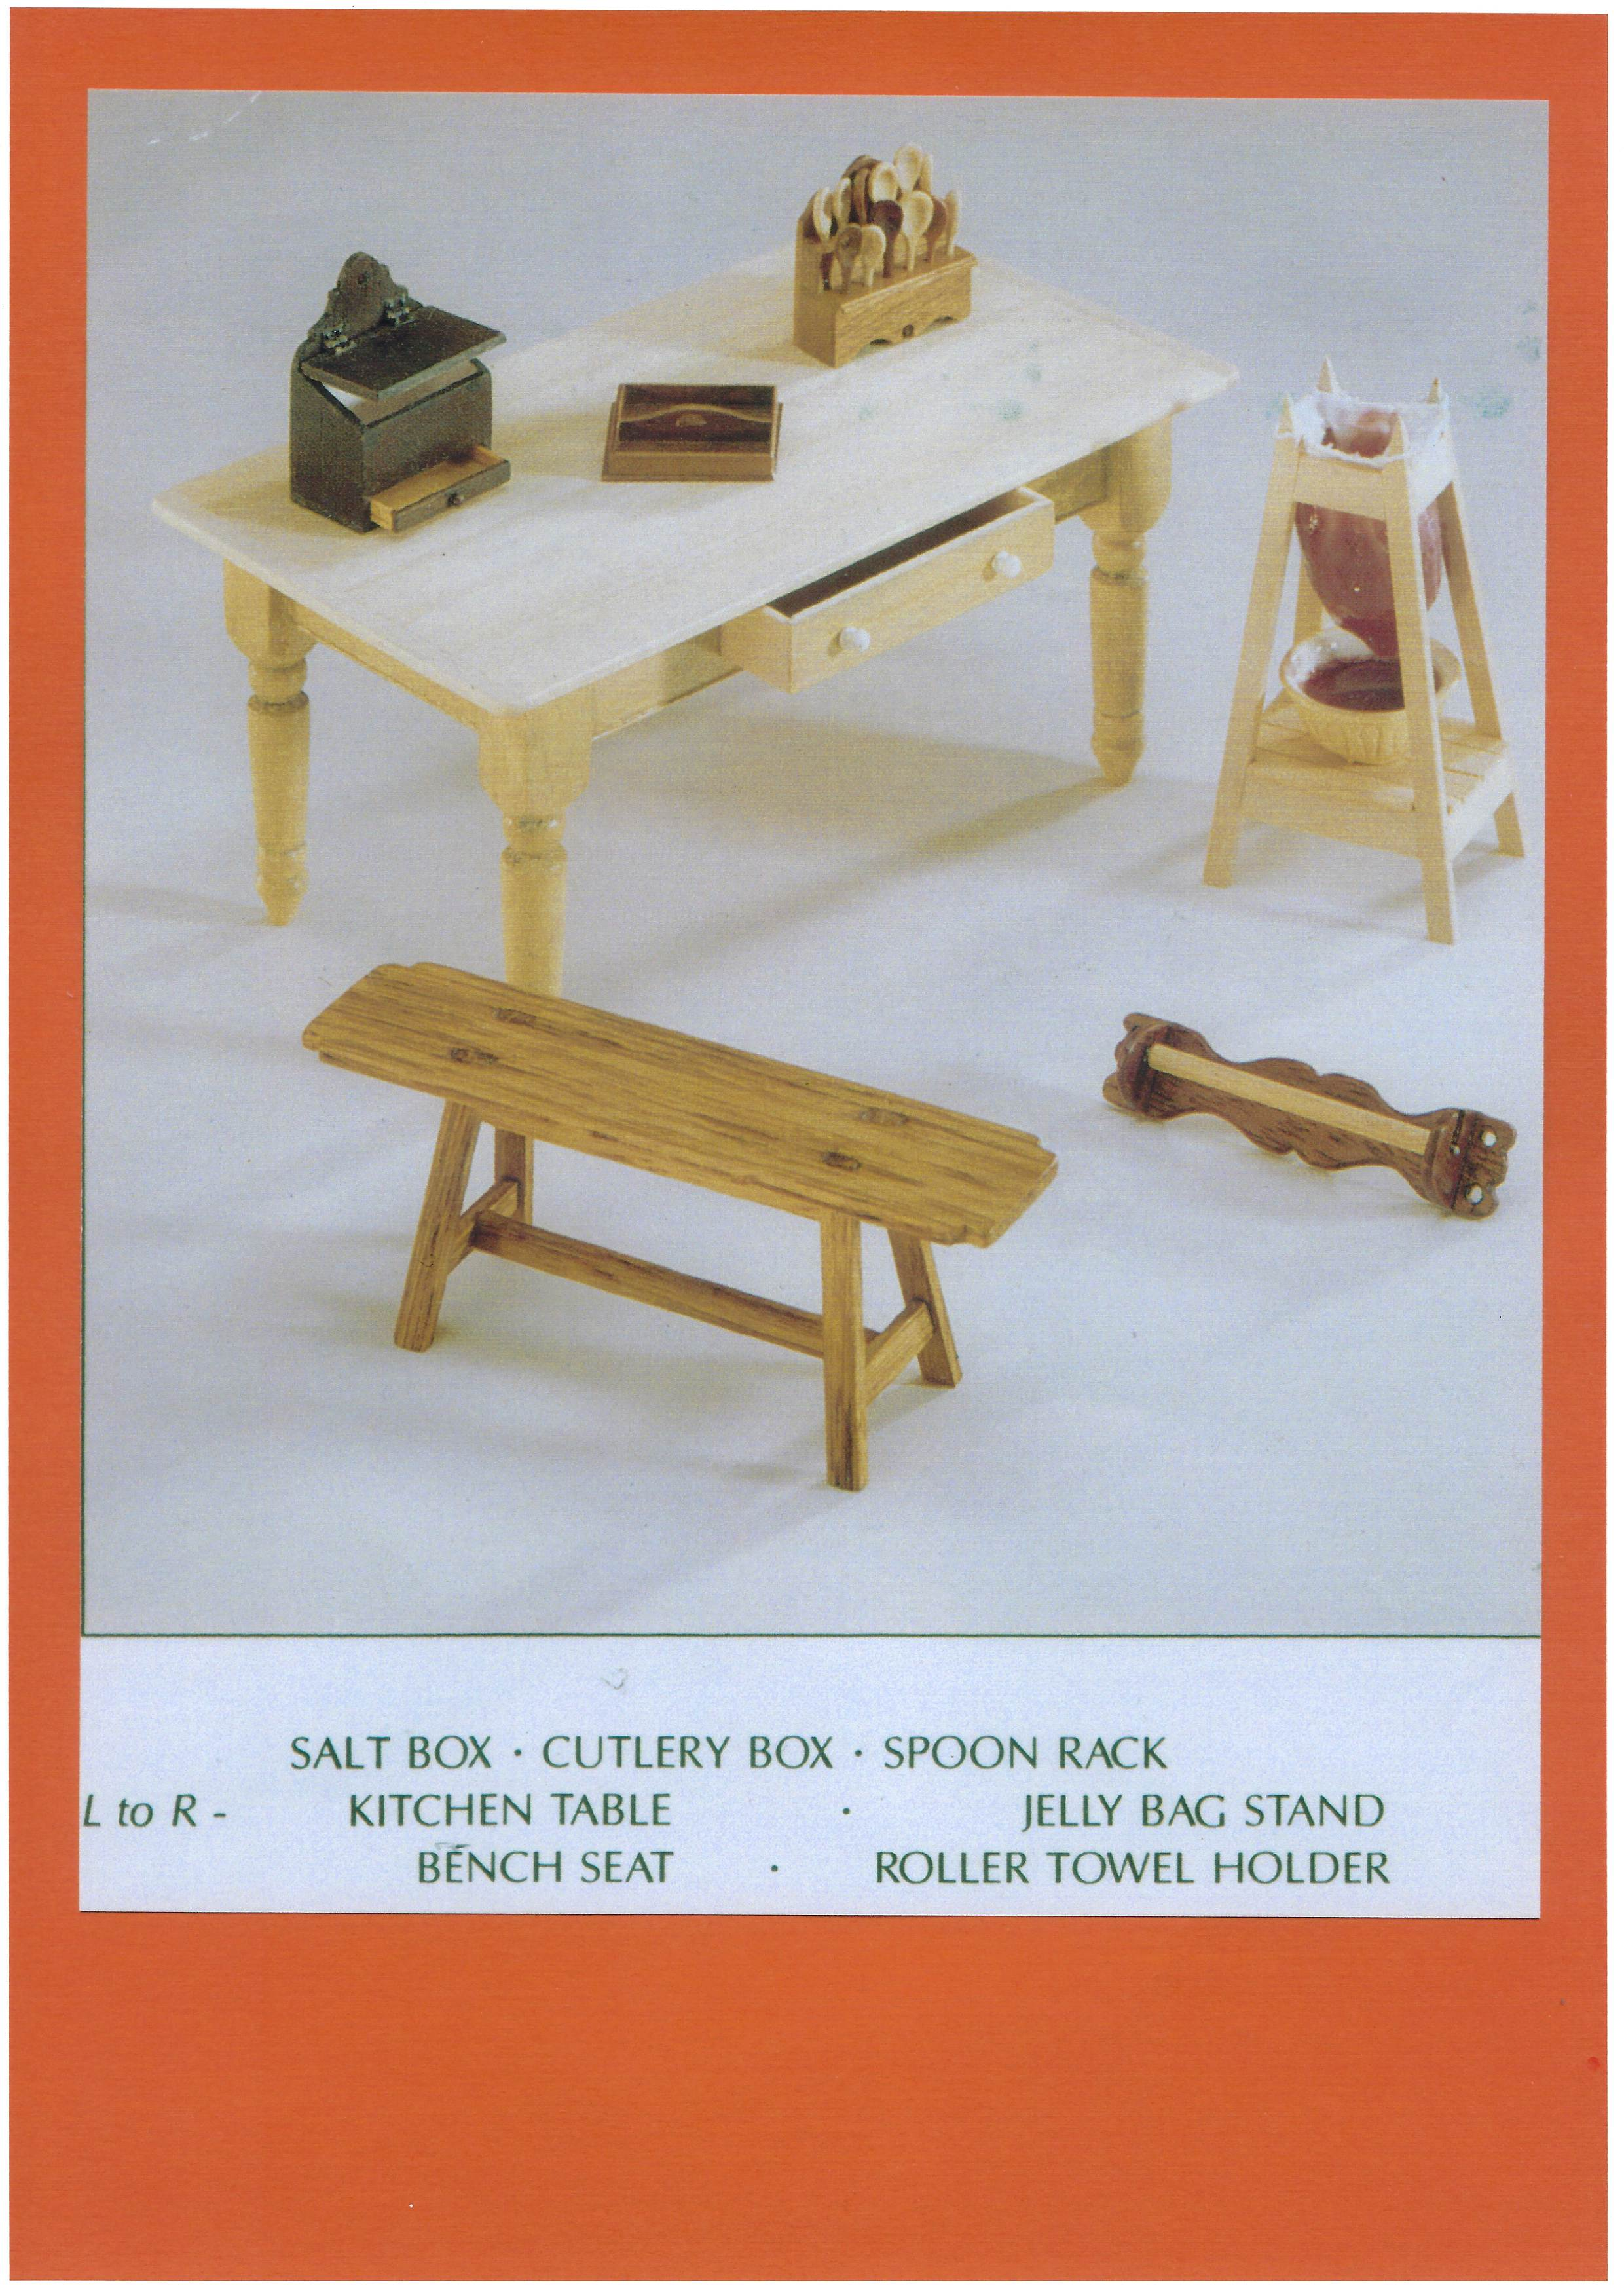 Wooden kitchen items by Cliff Brown, including his best selling spoon rack and jelly bag stand.